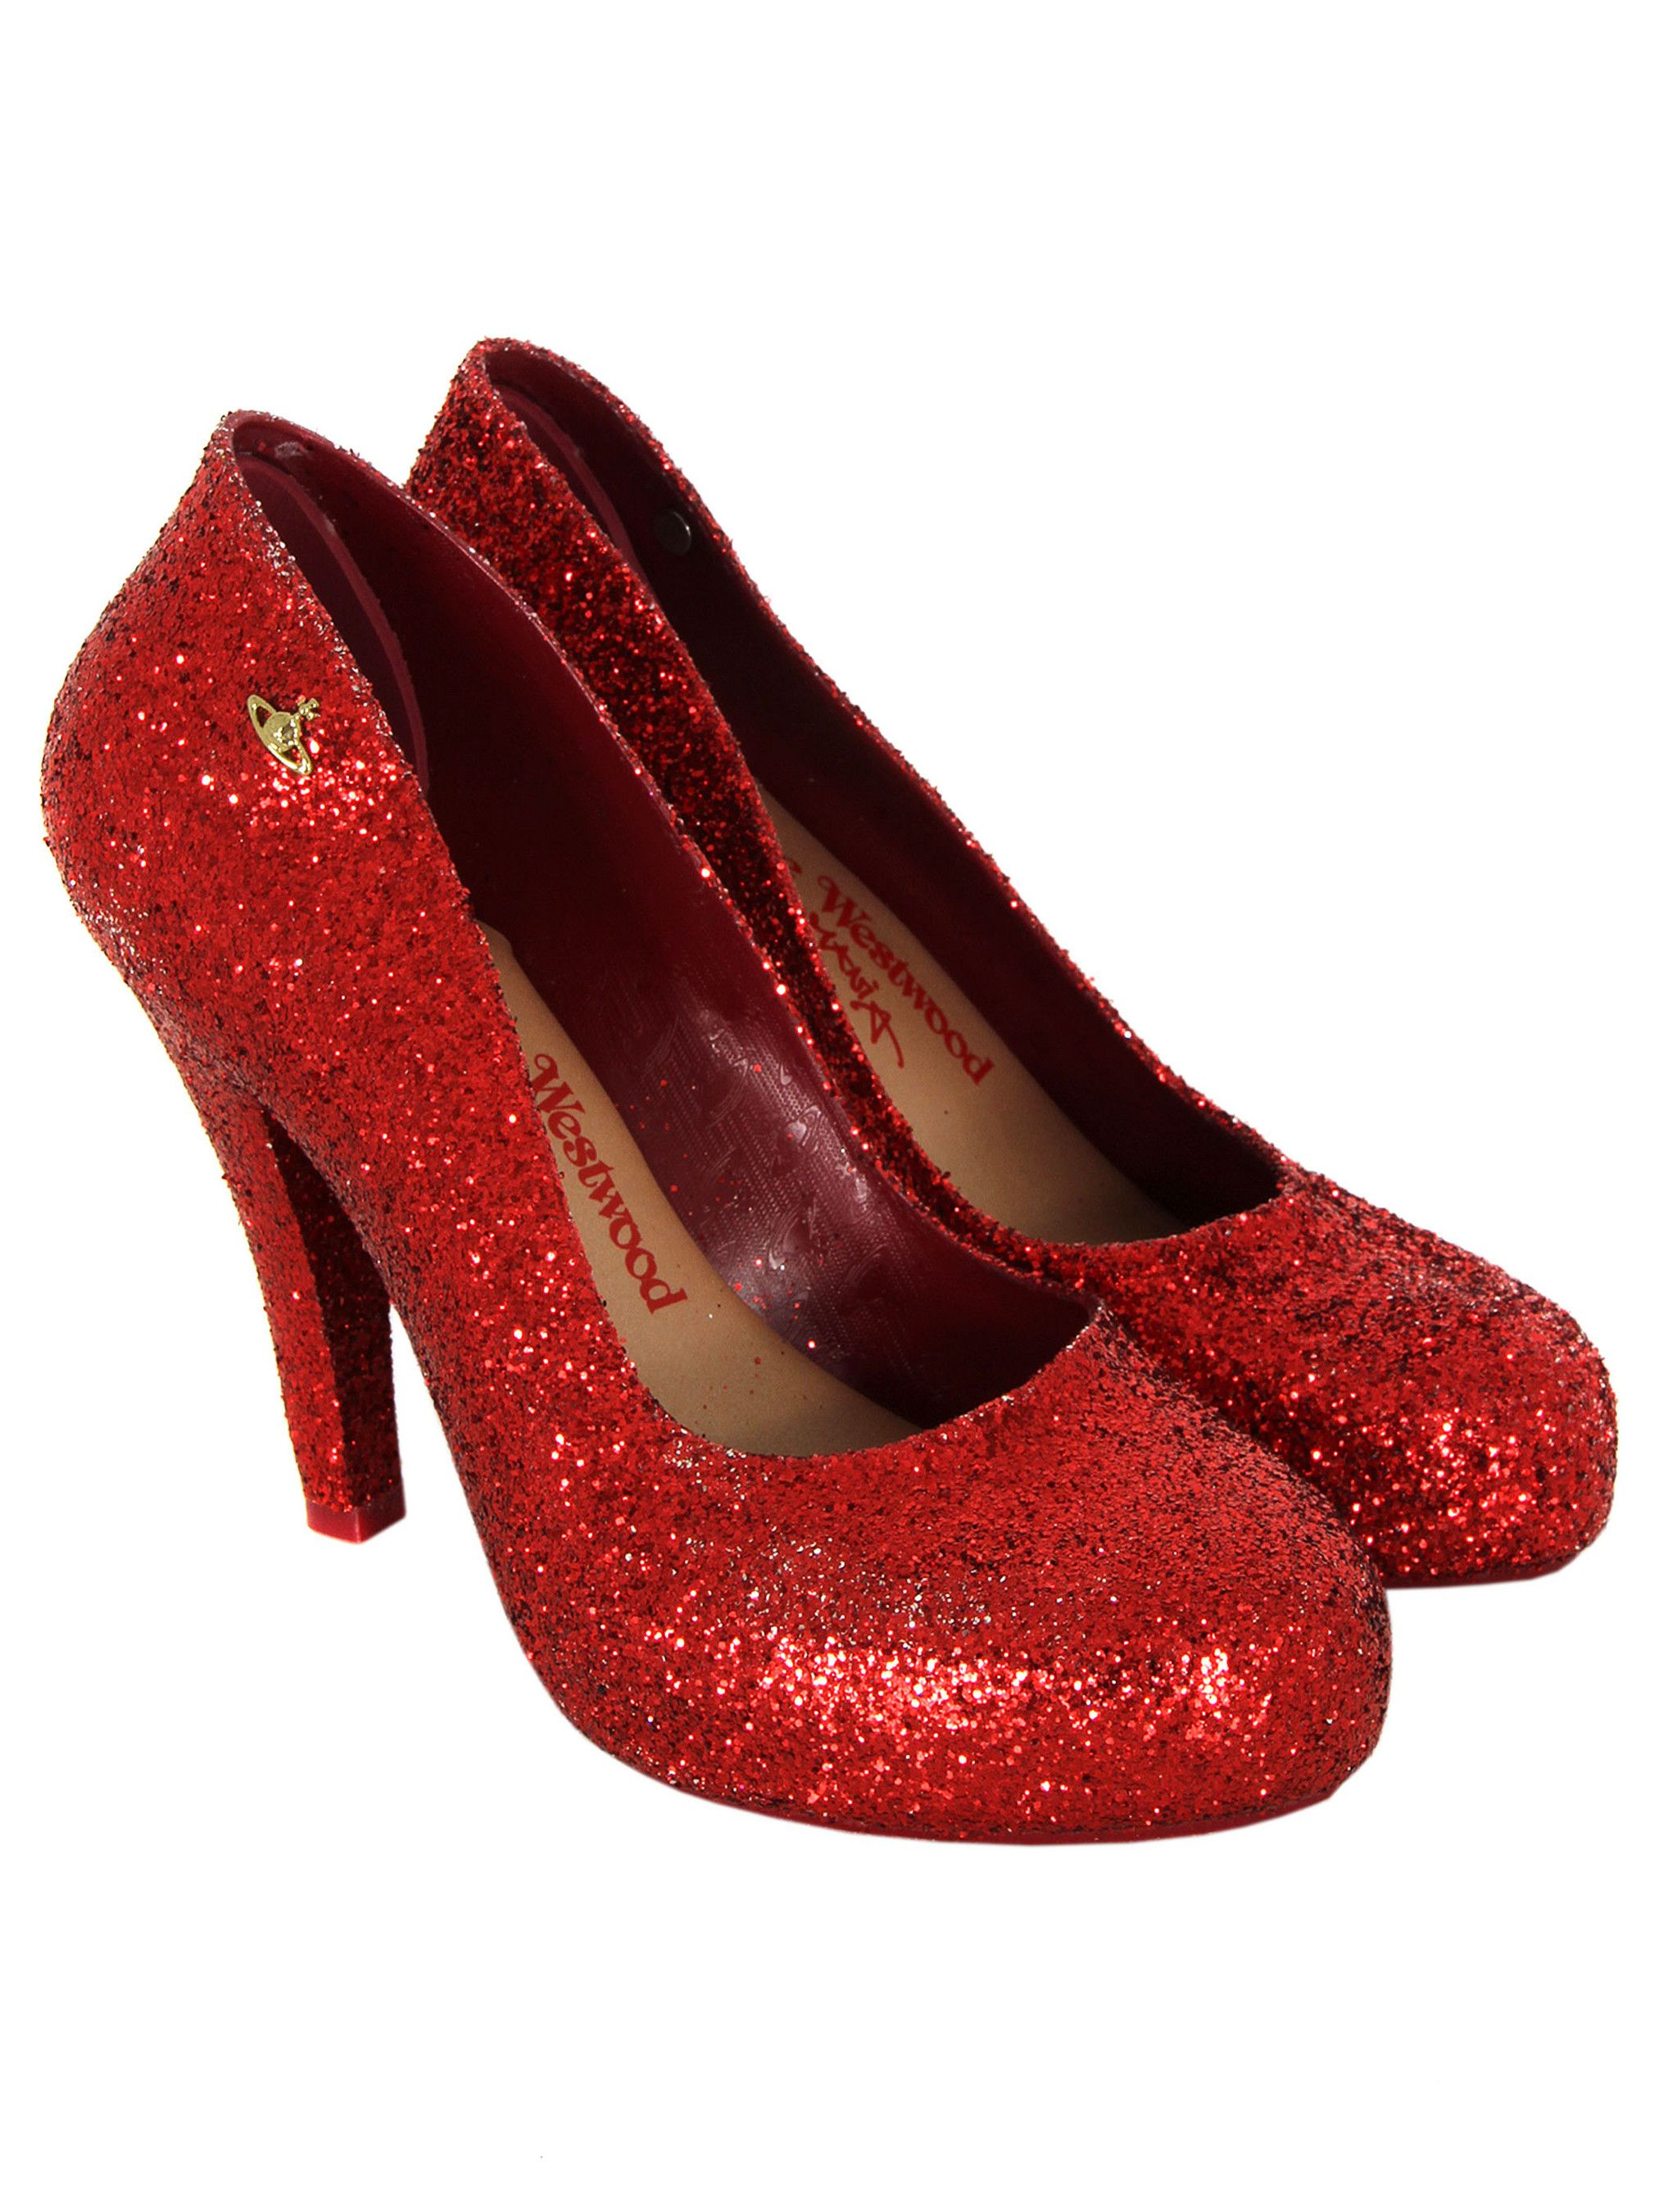 63a07f56898 Vivienne-Westwood-womens-Glitter-Skyscraper-Red-Shoes-